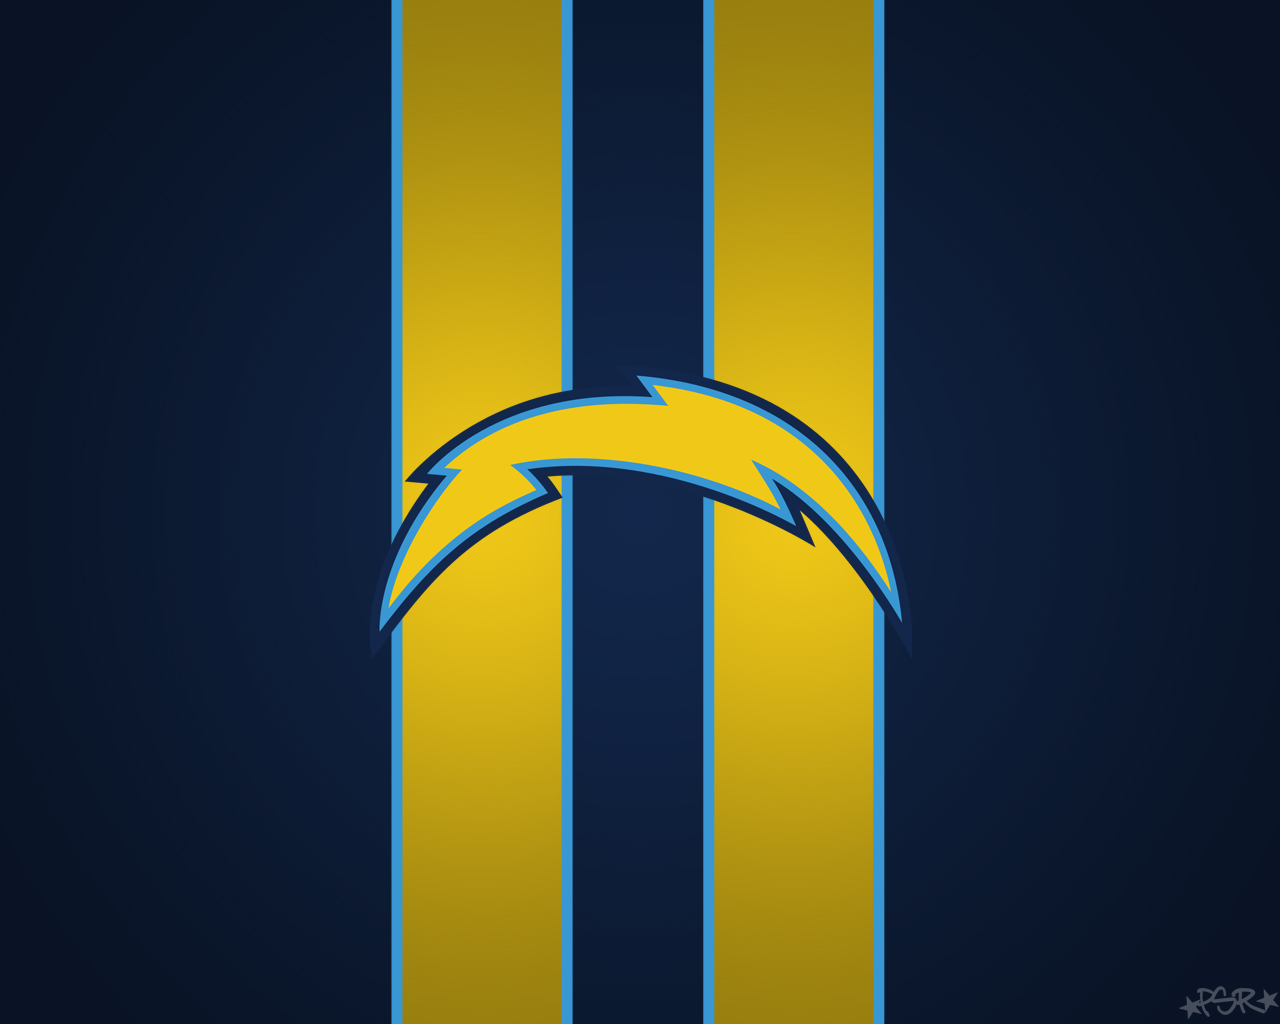 10 San Diego Chargers HD Wallpapers Backgrounds 1280x1024